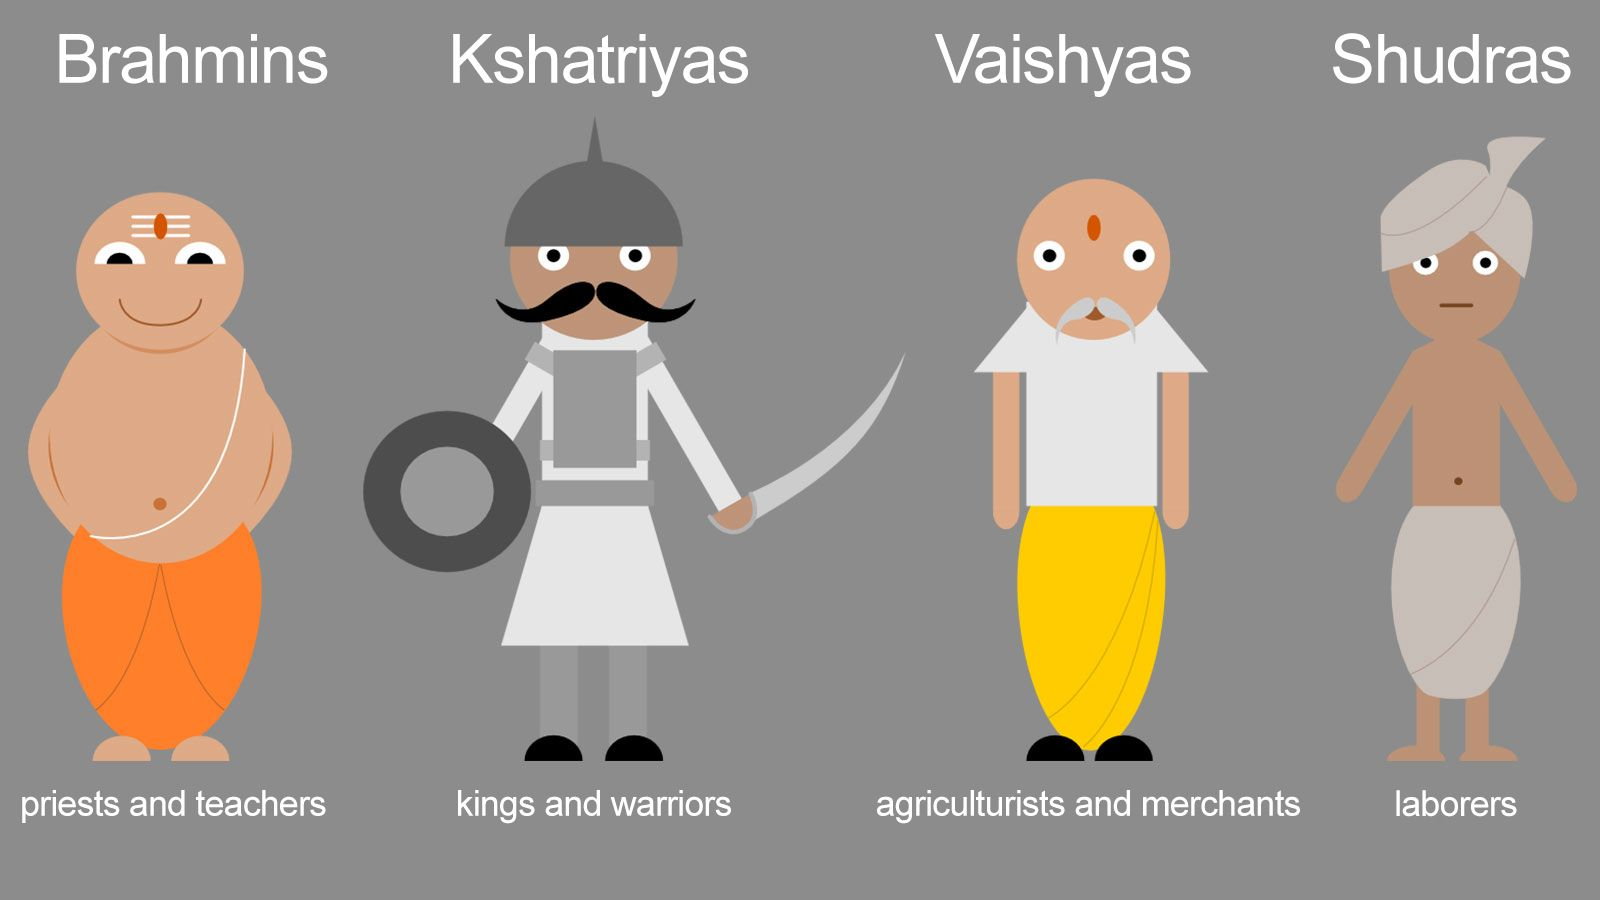 caste system originated during gupta dynasty study  u2022 the archeology clipart archeology clipart